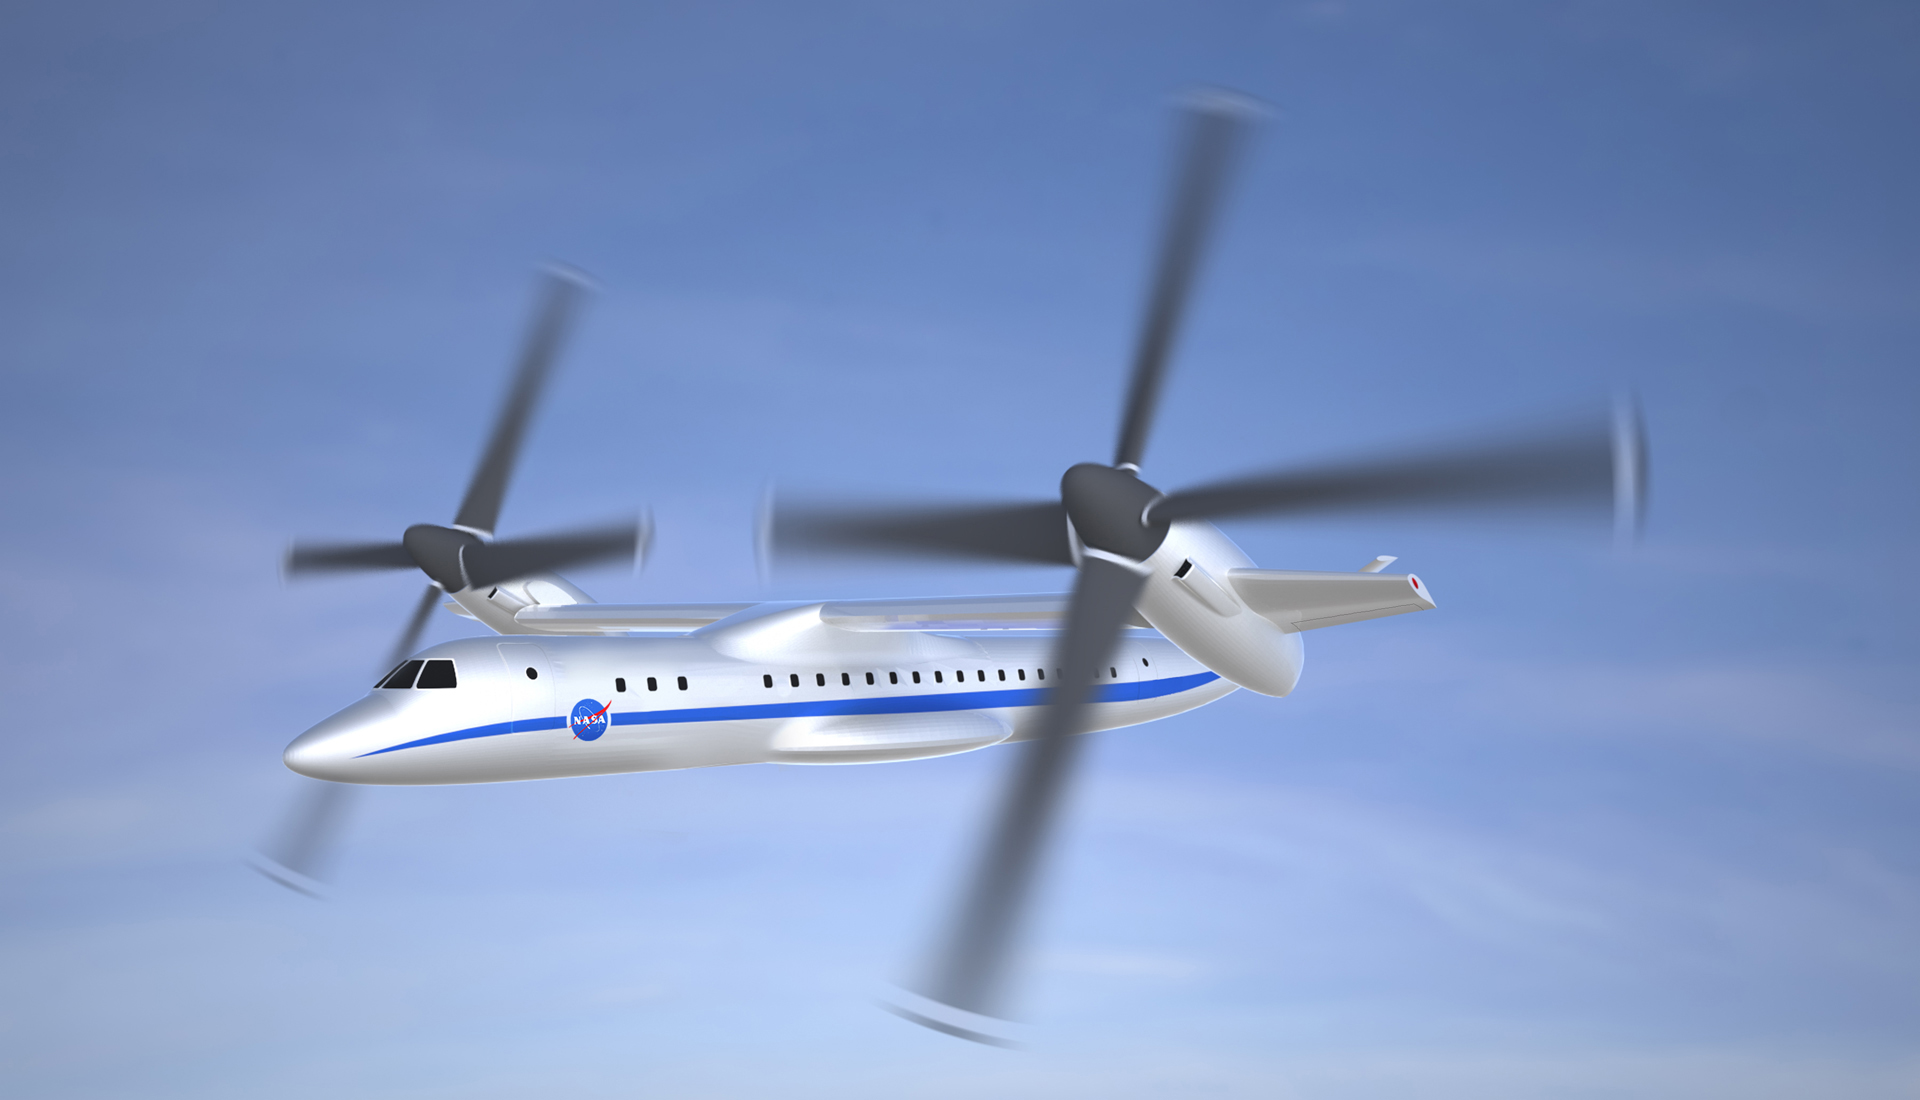 Large Civil Tilt Rotor First Flight, Circa 2023